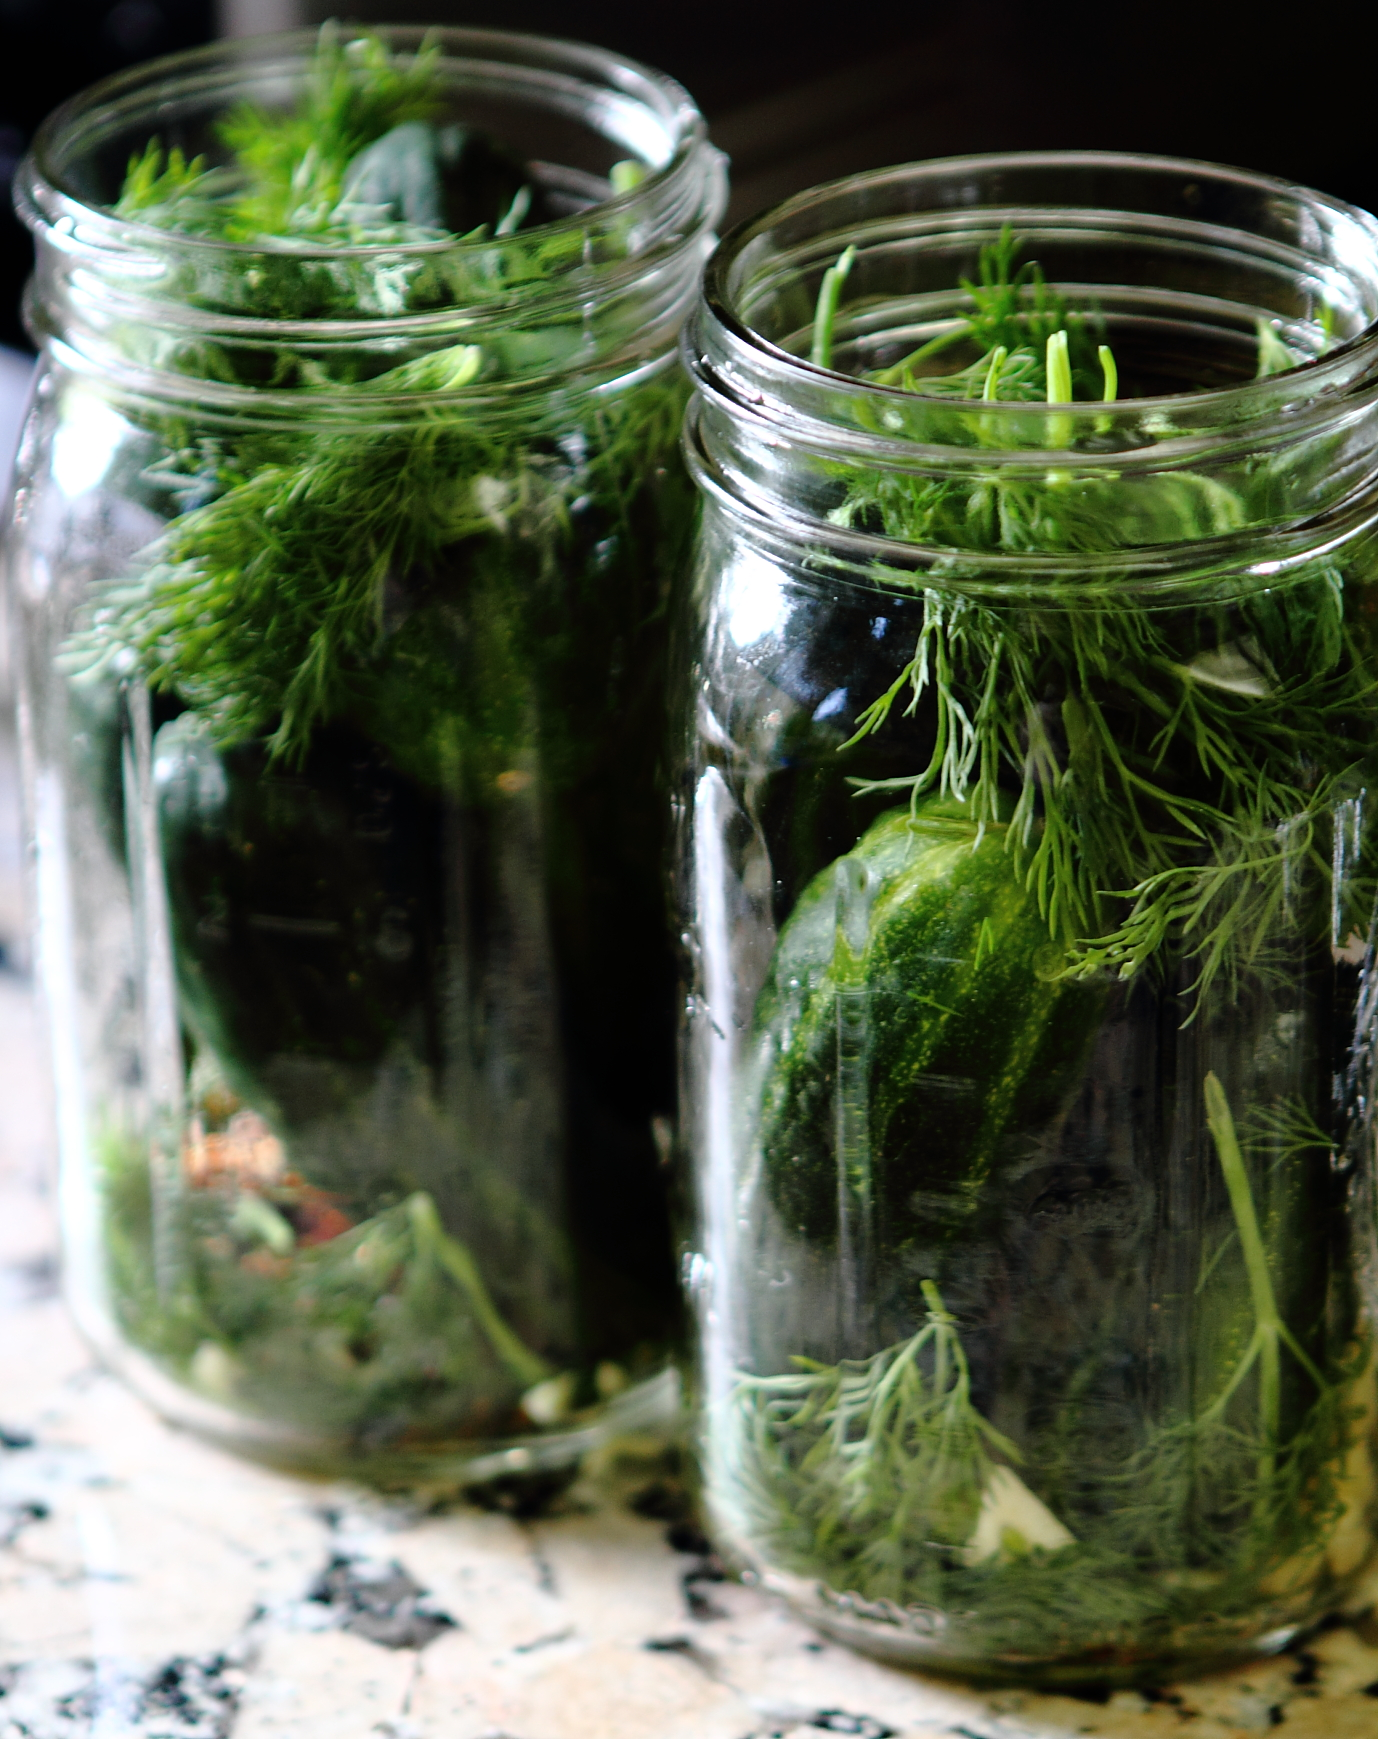 Making Dill Pickles